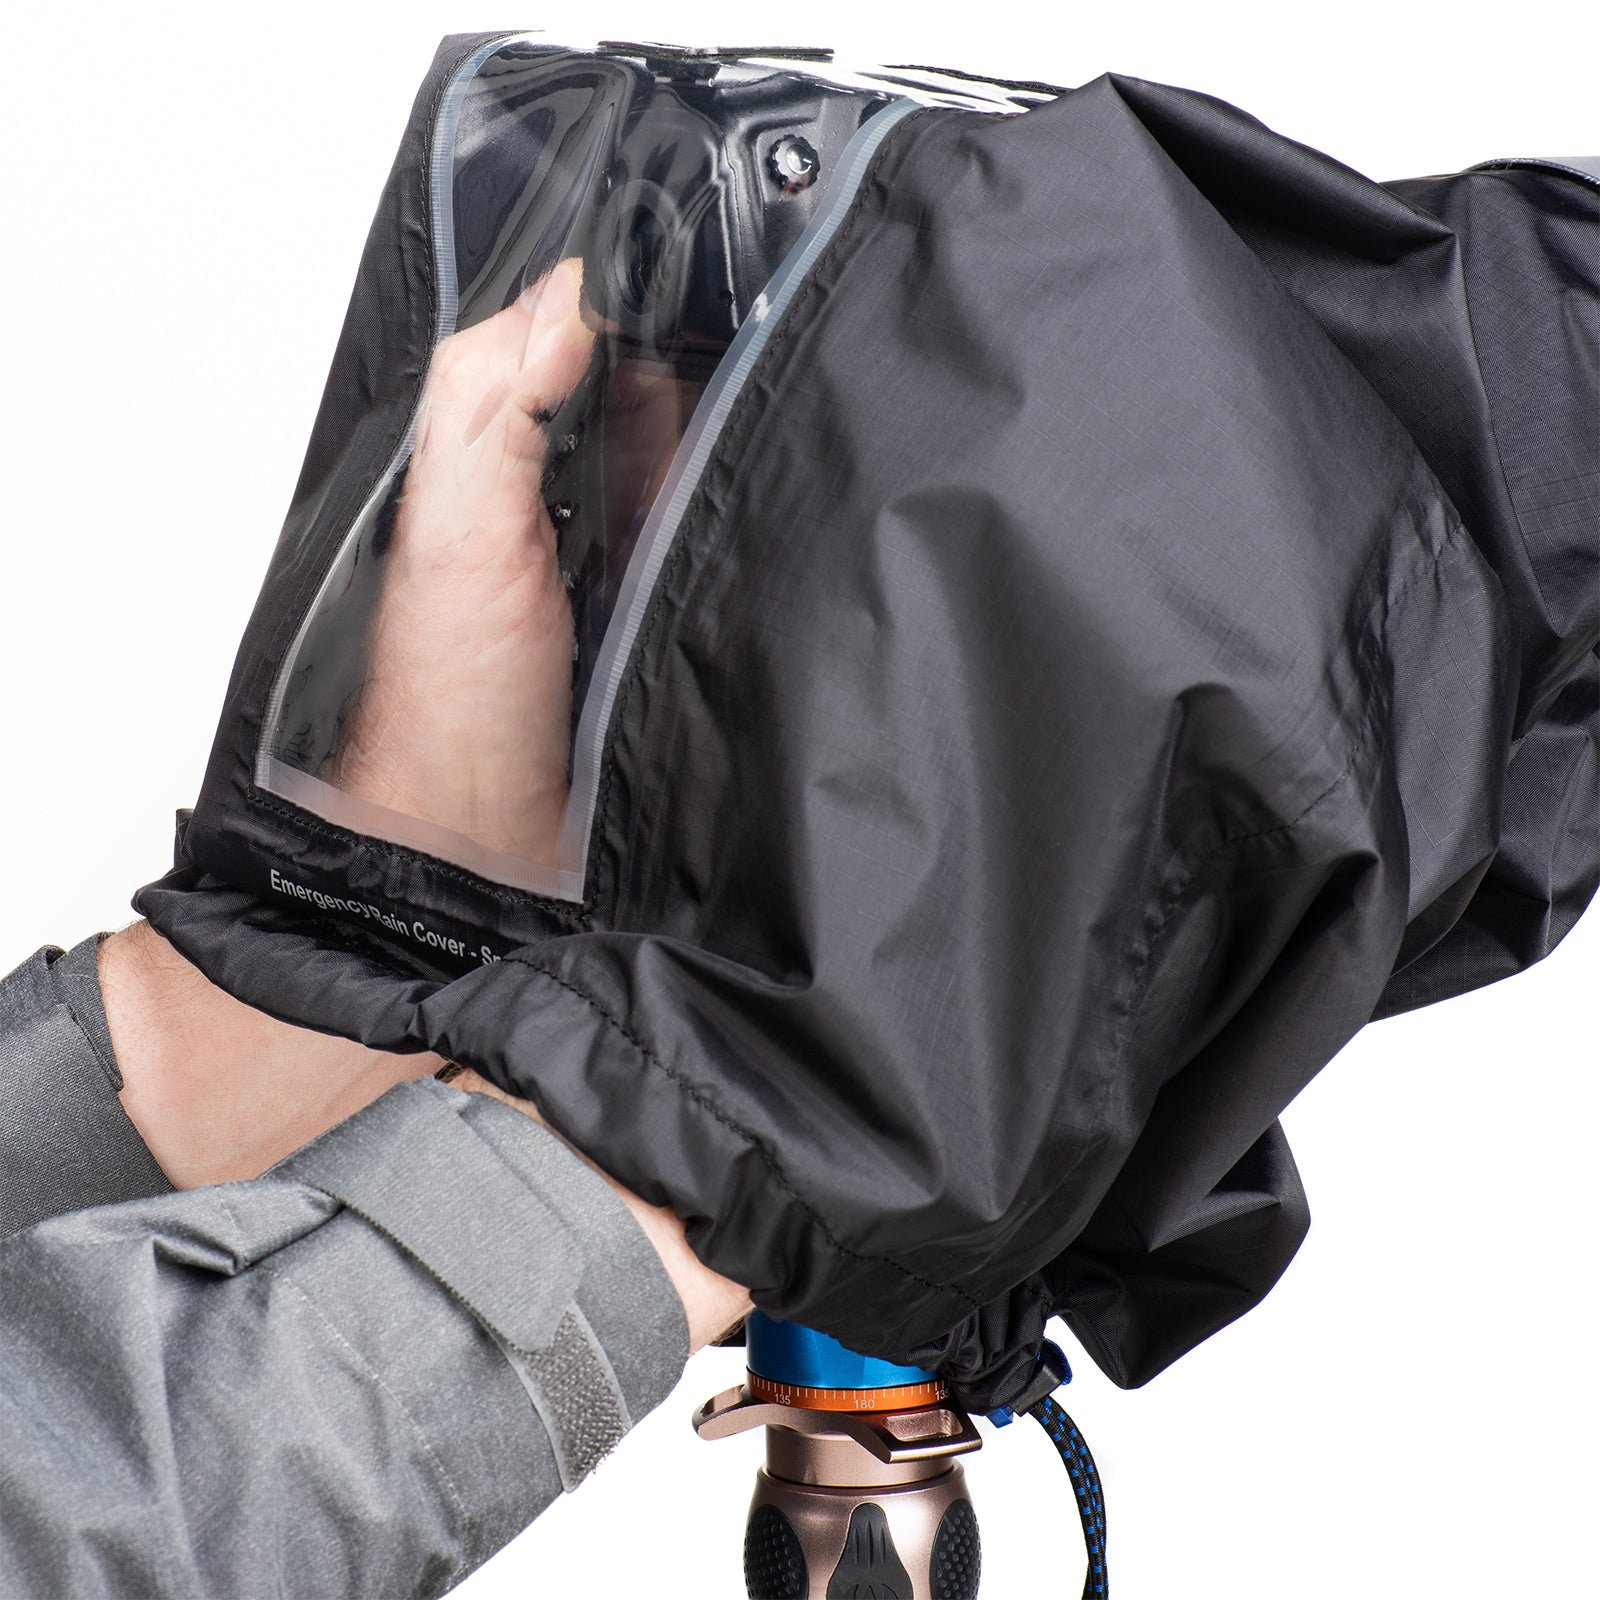 Emergency Rain Covers protect your DSLR and Mirrorless